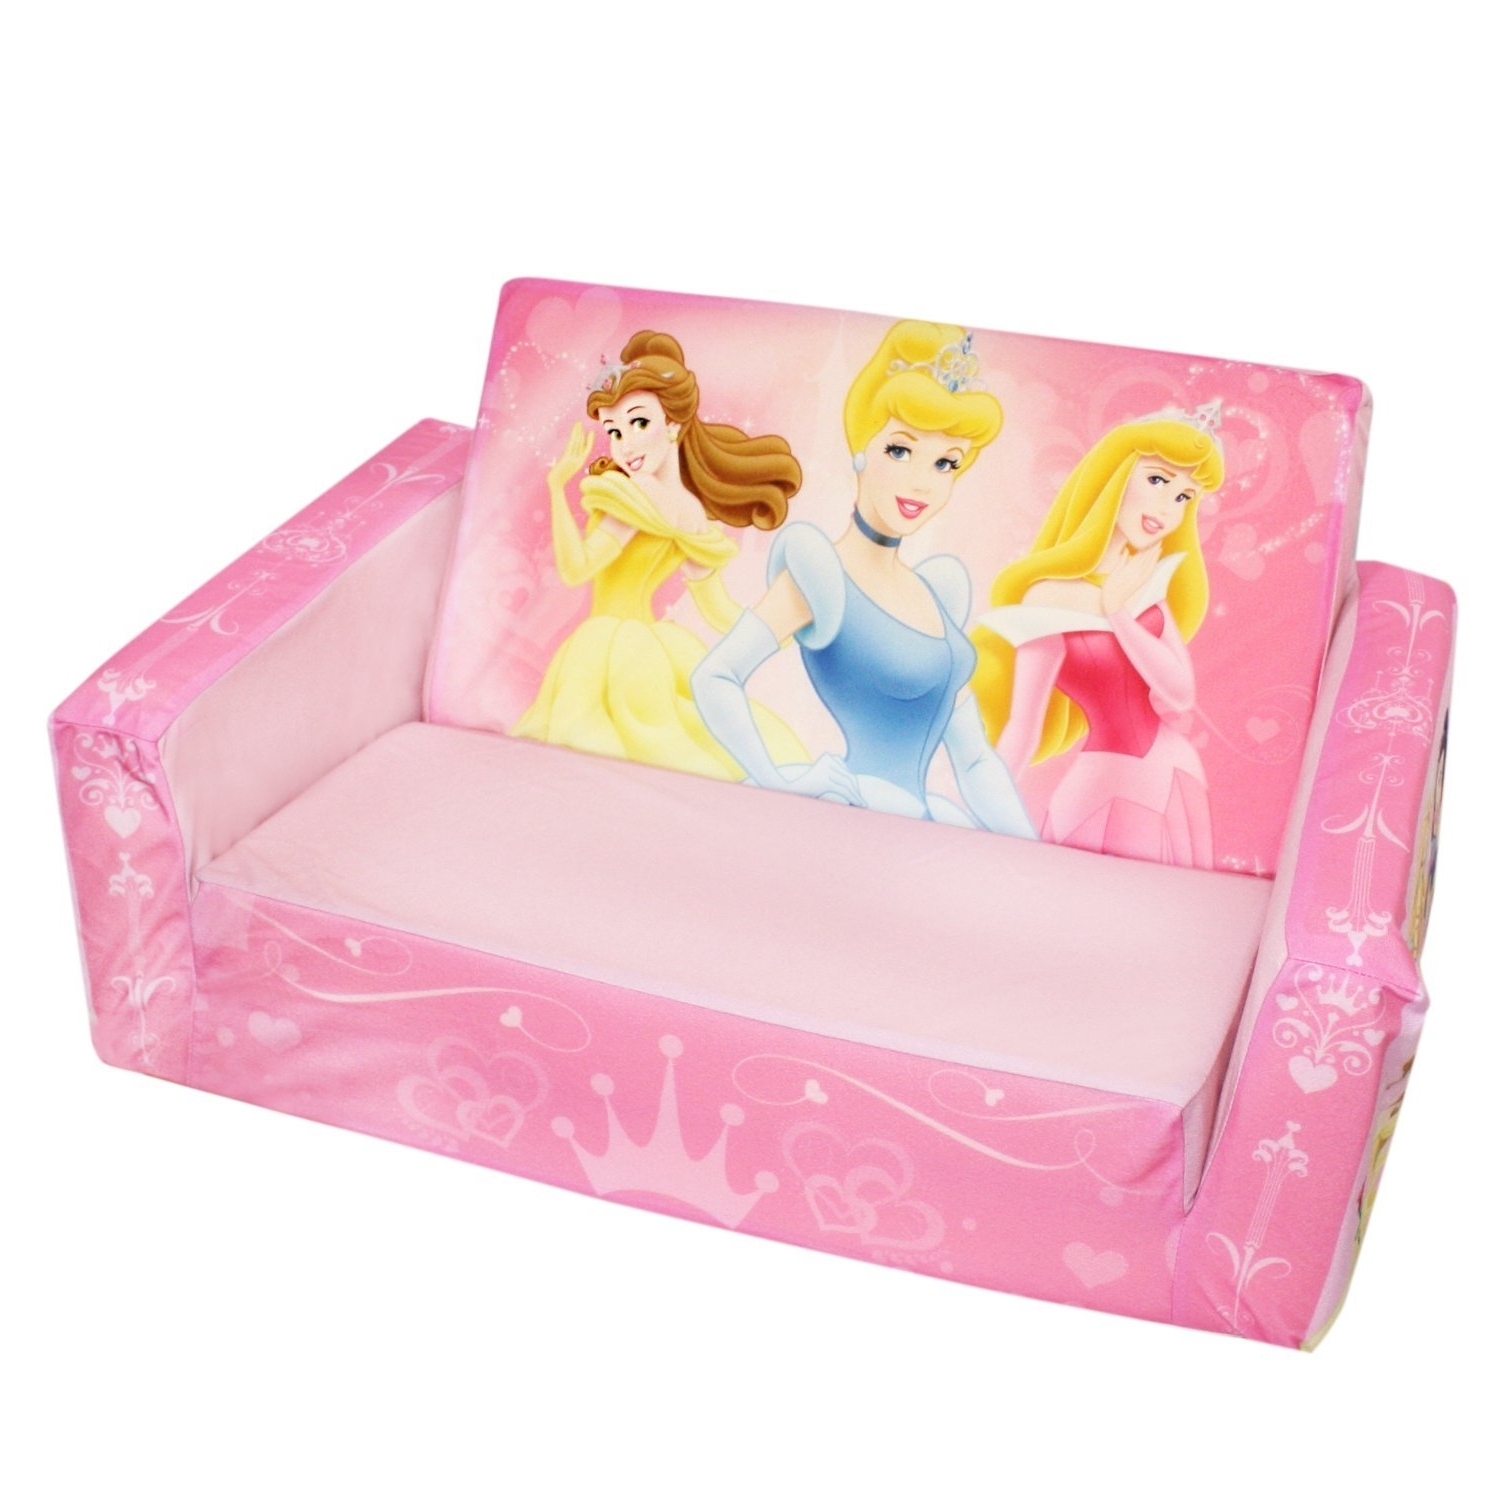 Most Recent Disney Sofa Chairs Pertaining To Disney Princess Fold Out Couch — Randy Gregory Design : Fold Out (View 11 of 15)